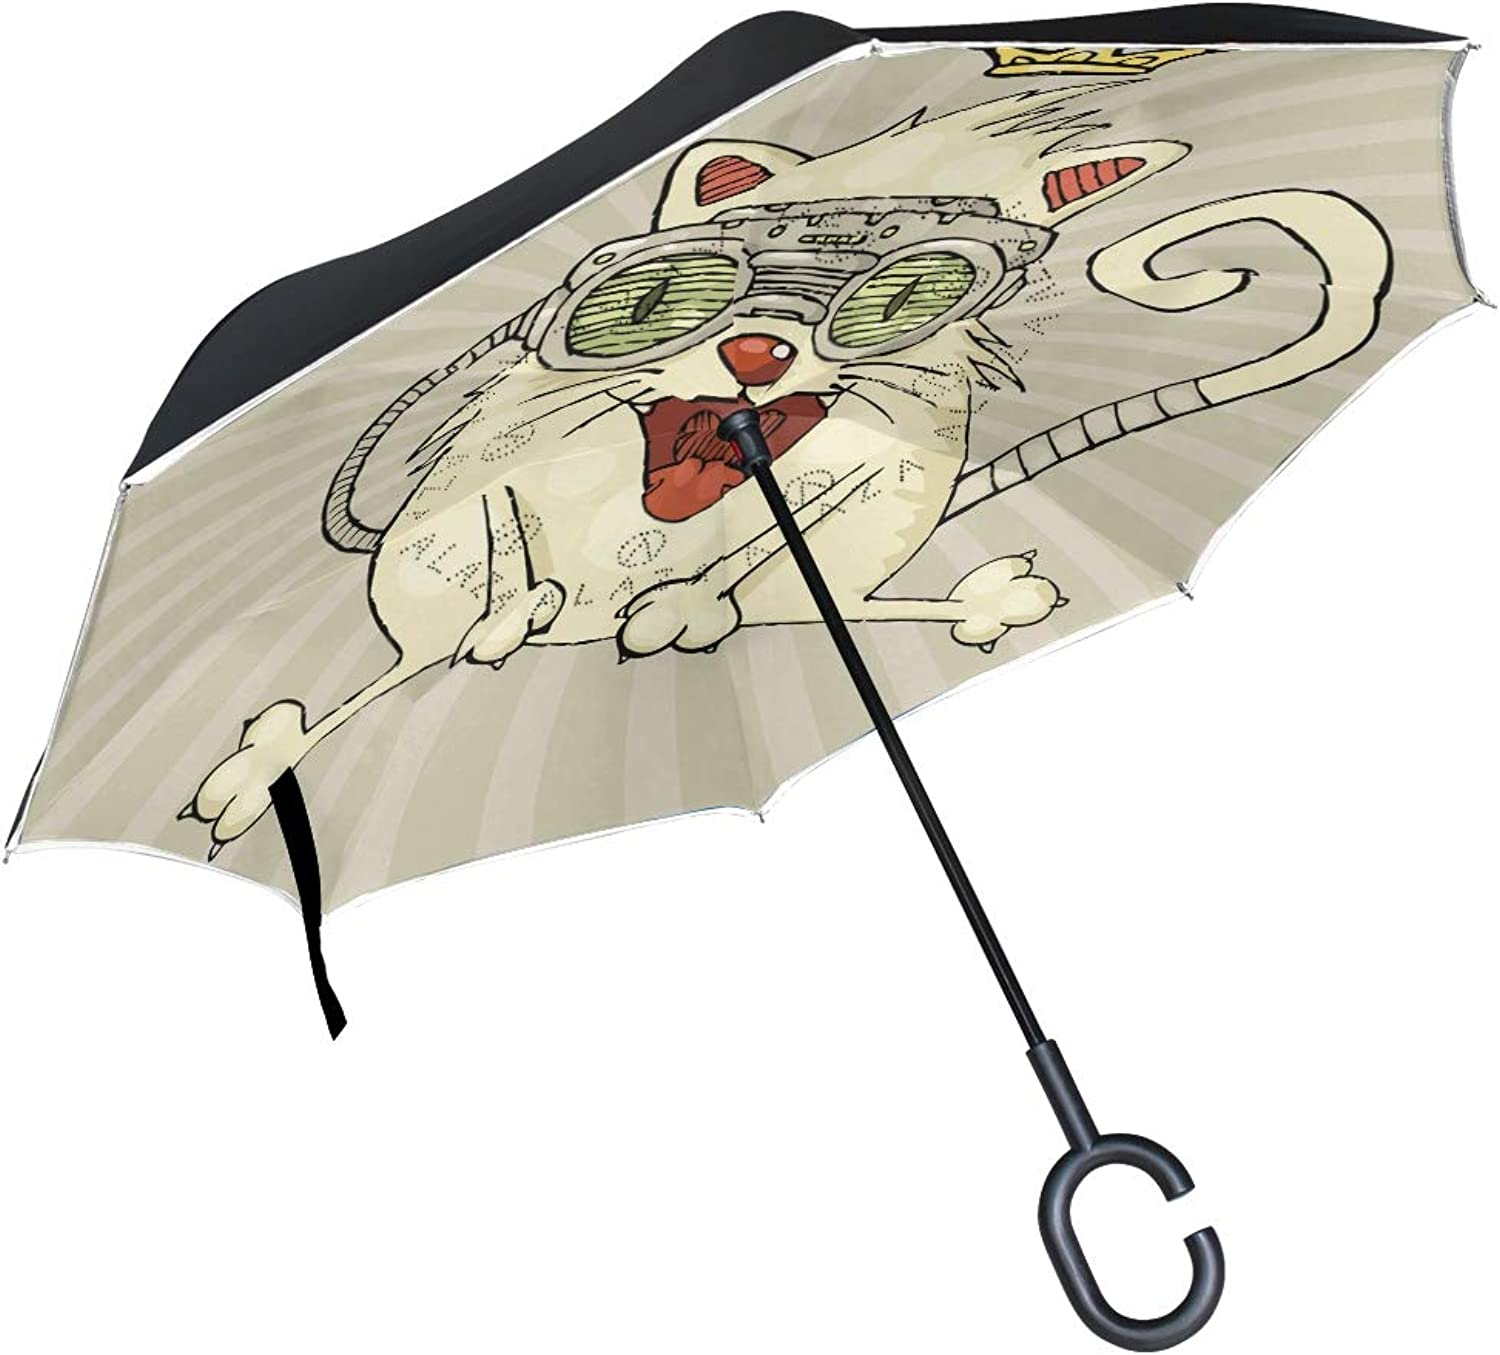 Bunny Turnip Ingreened Umbrella Compact Windproof Double Layer Car Reverse UV Predection Umbrellas for Cars Travel Beach Women Kids